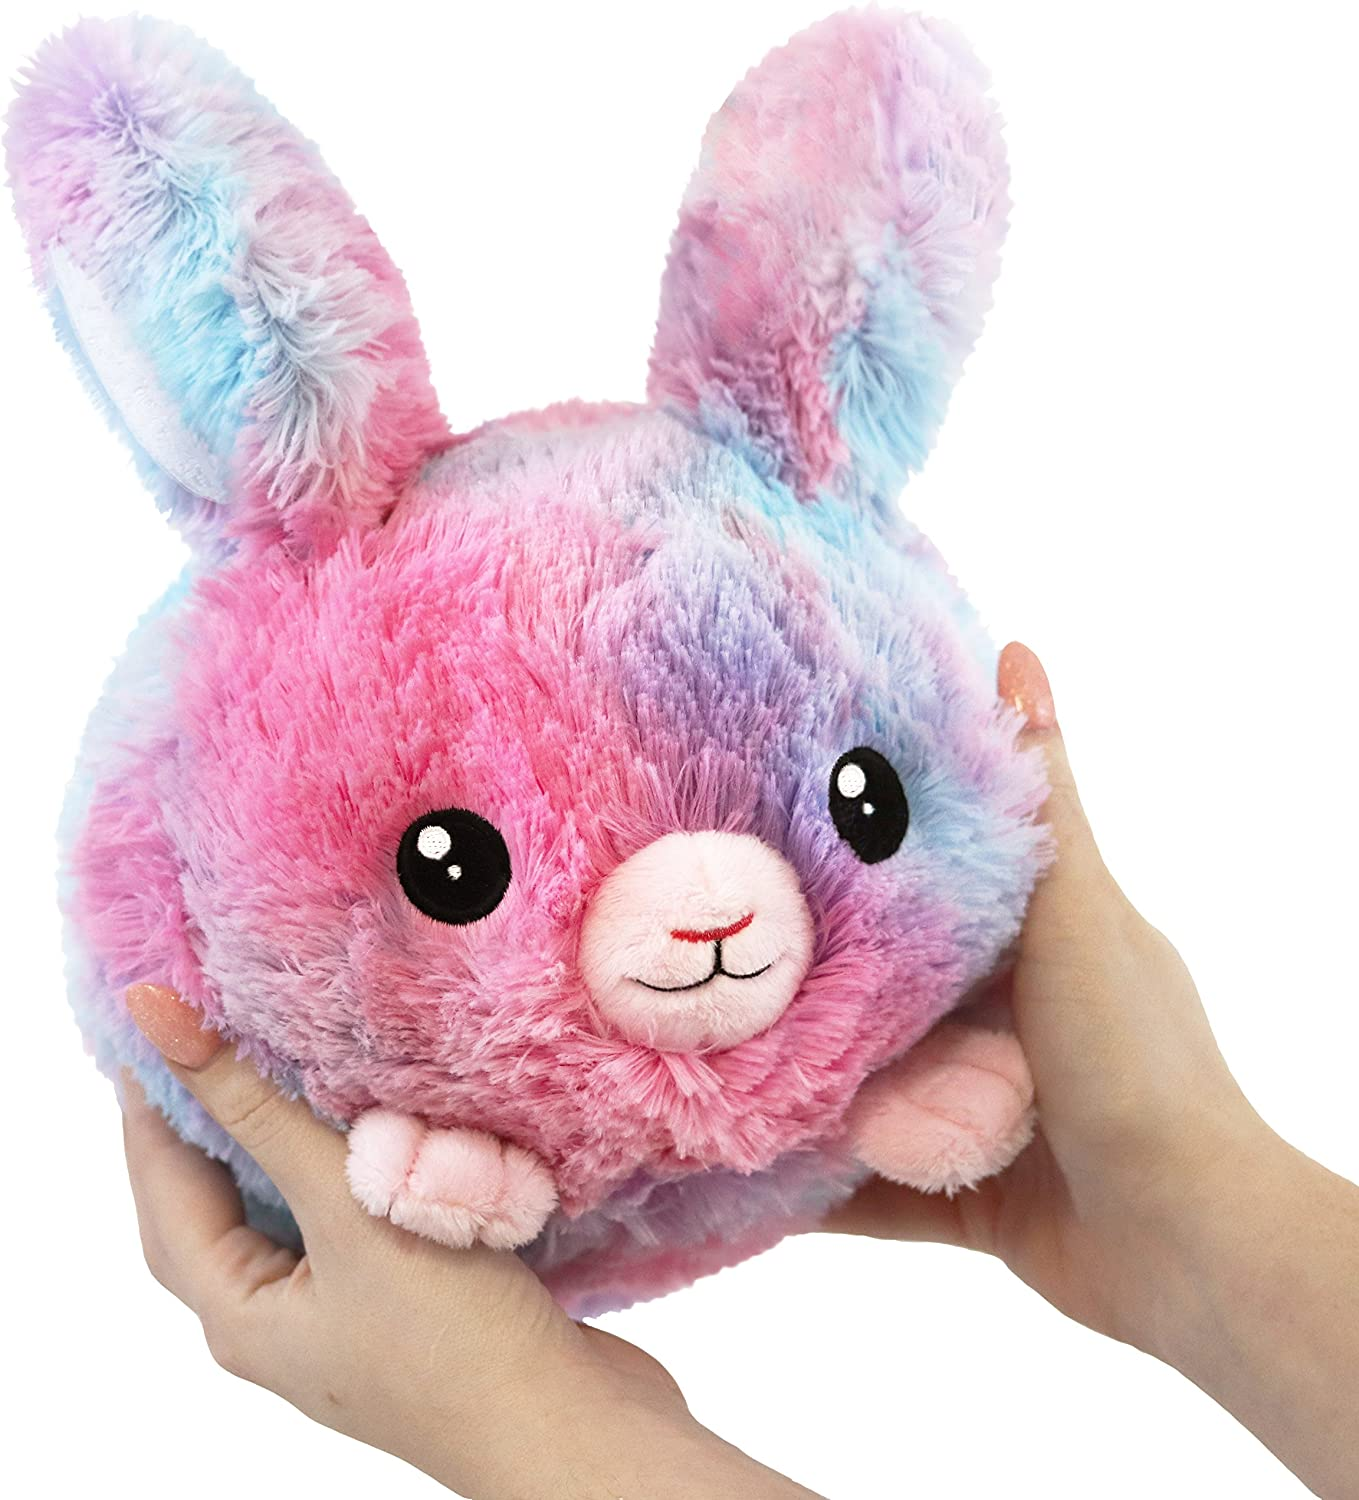 Squishable / Mini Cotton Candy Easter Bunny - 7